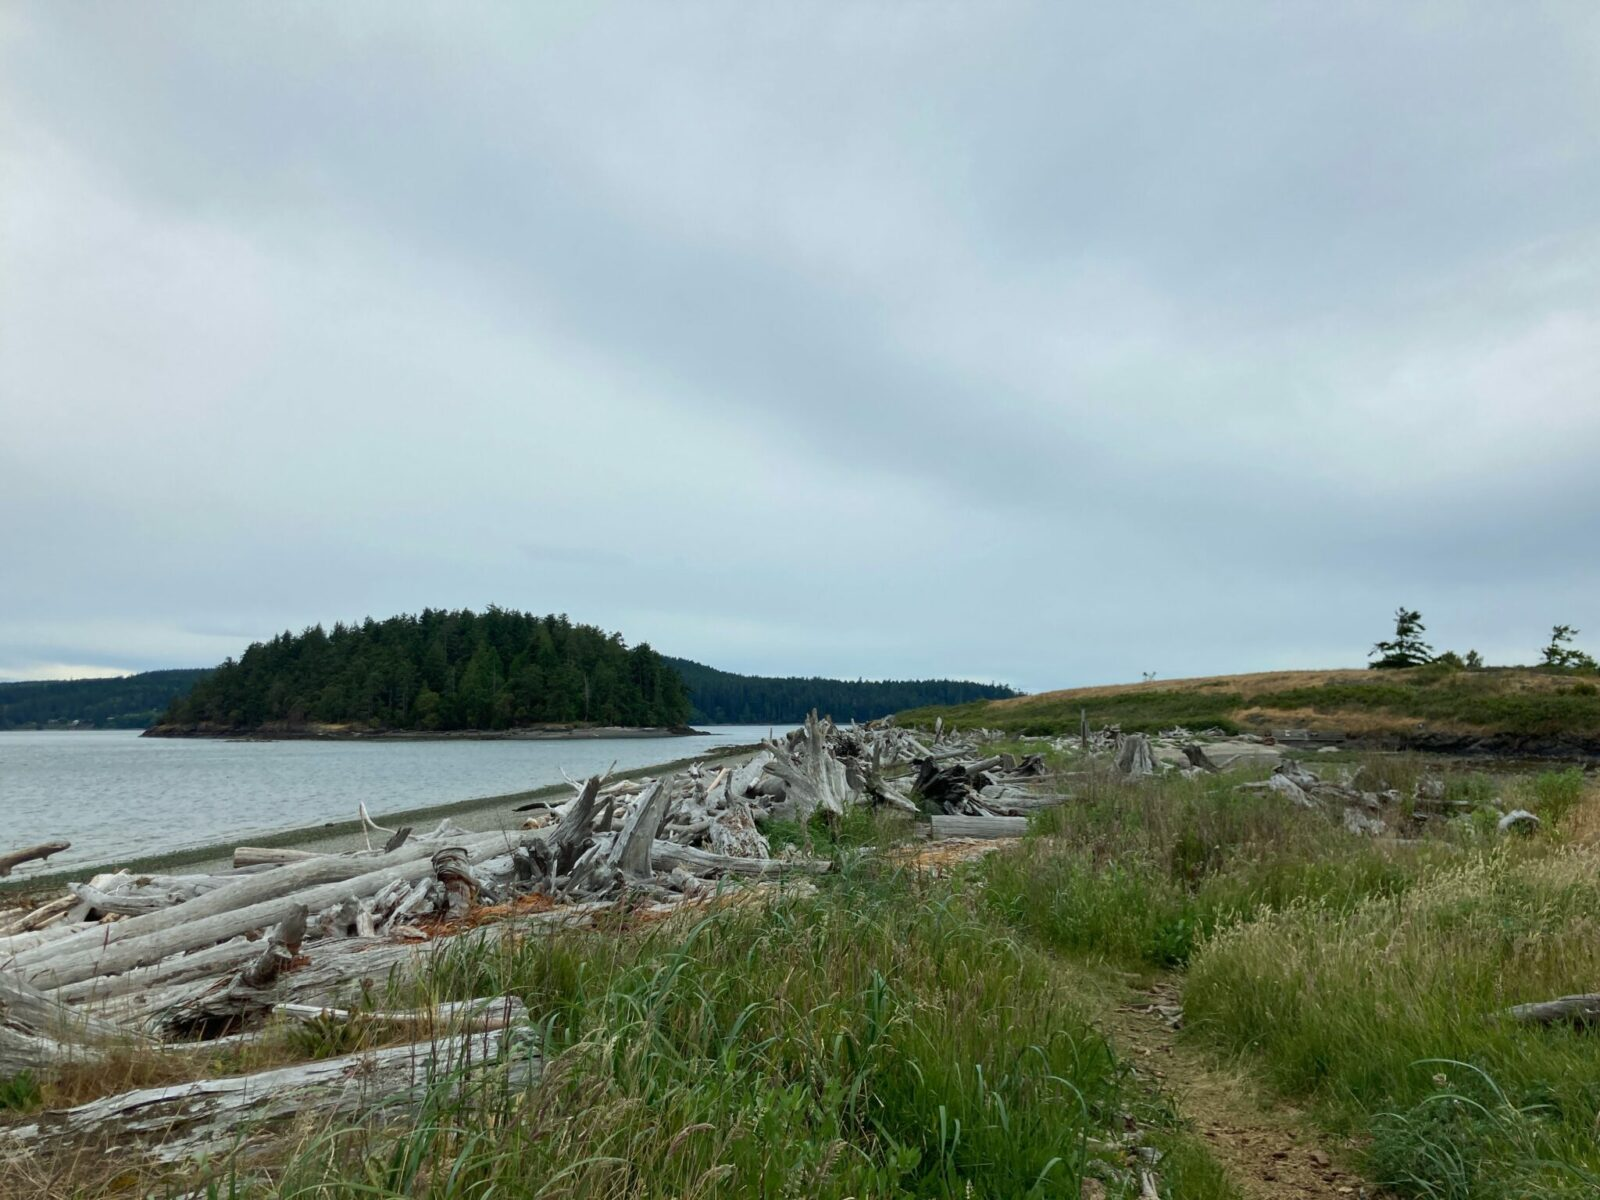 The beach at Kukutali Preserve. There is driftwood and grasses along the side of a trail. In the distance you can see an island in the sea